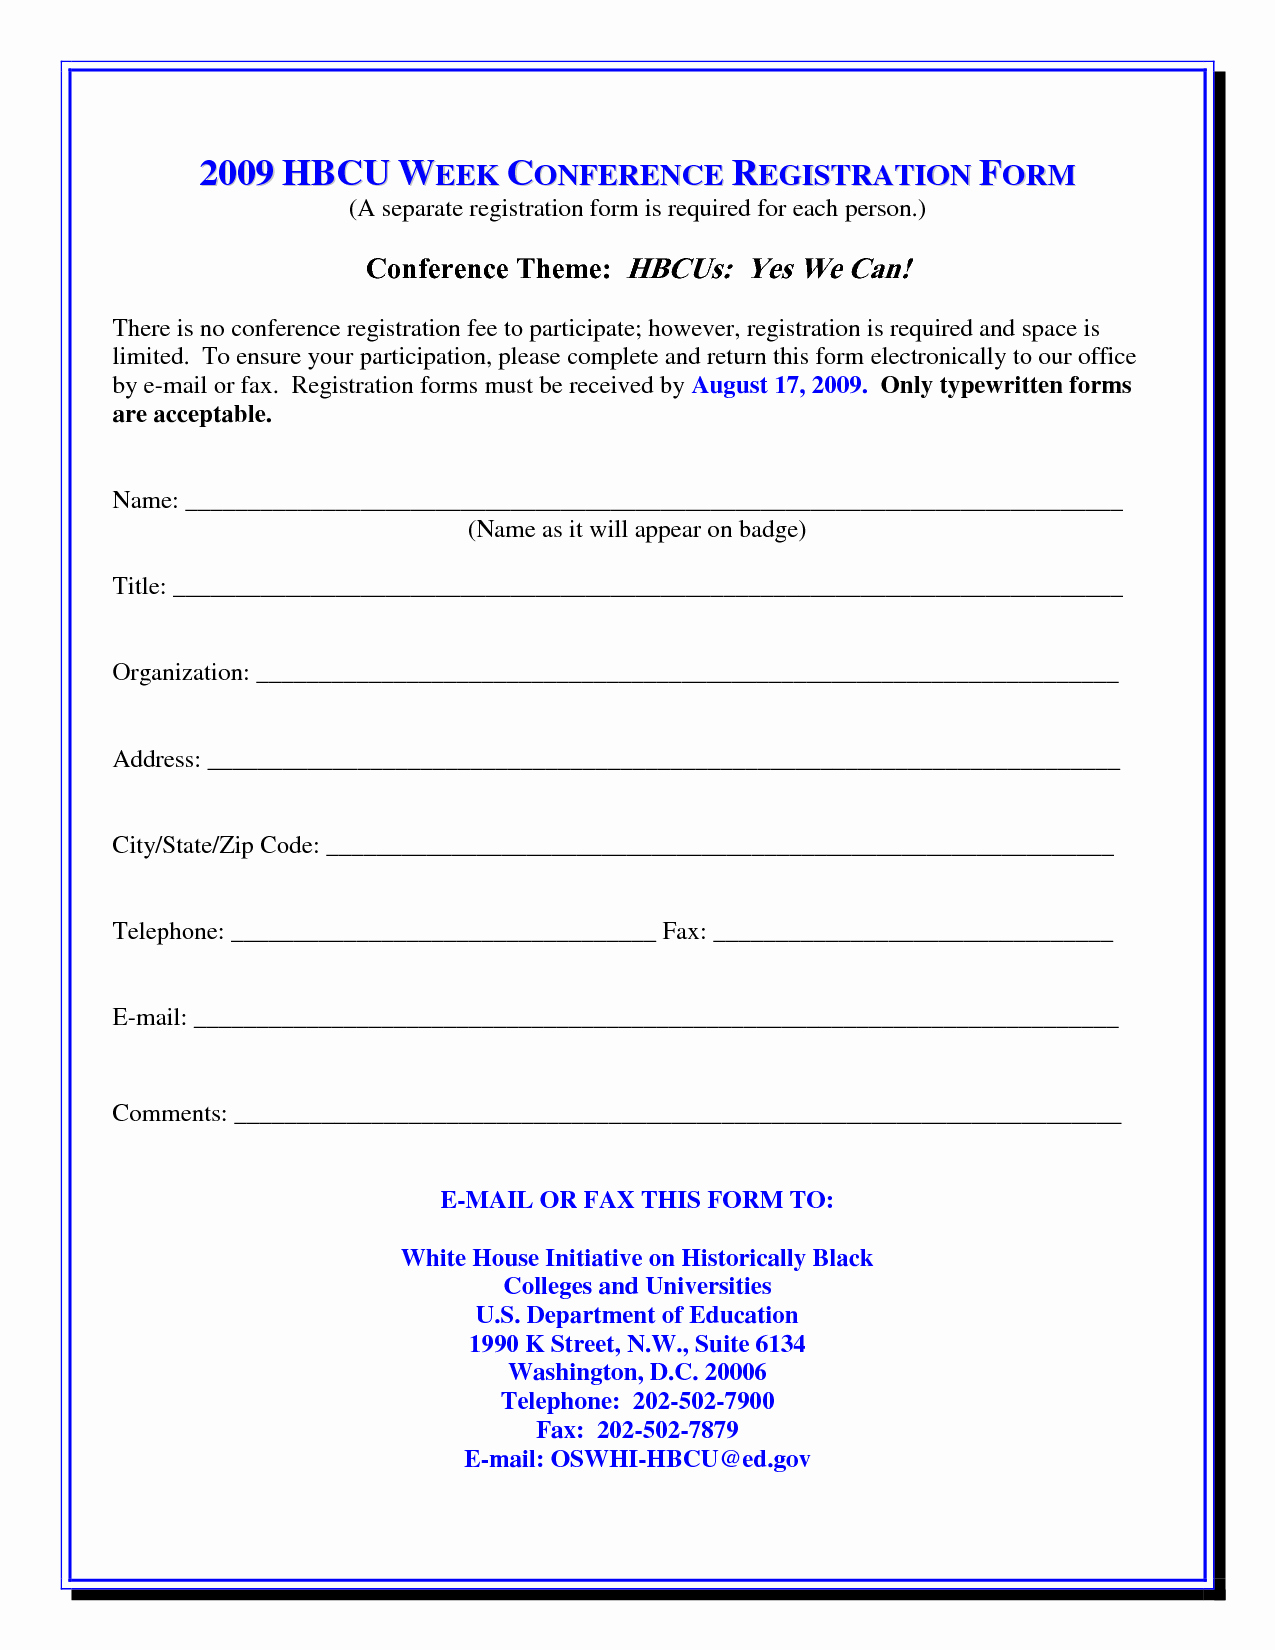 Conference Registration form Template Word Elegant Index Of Cdn 3 1993 630